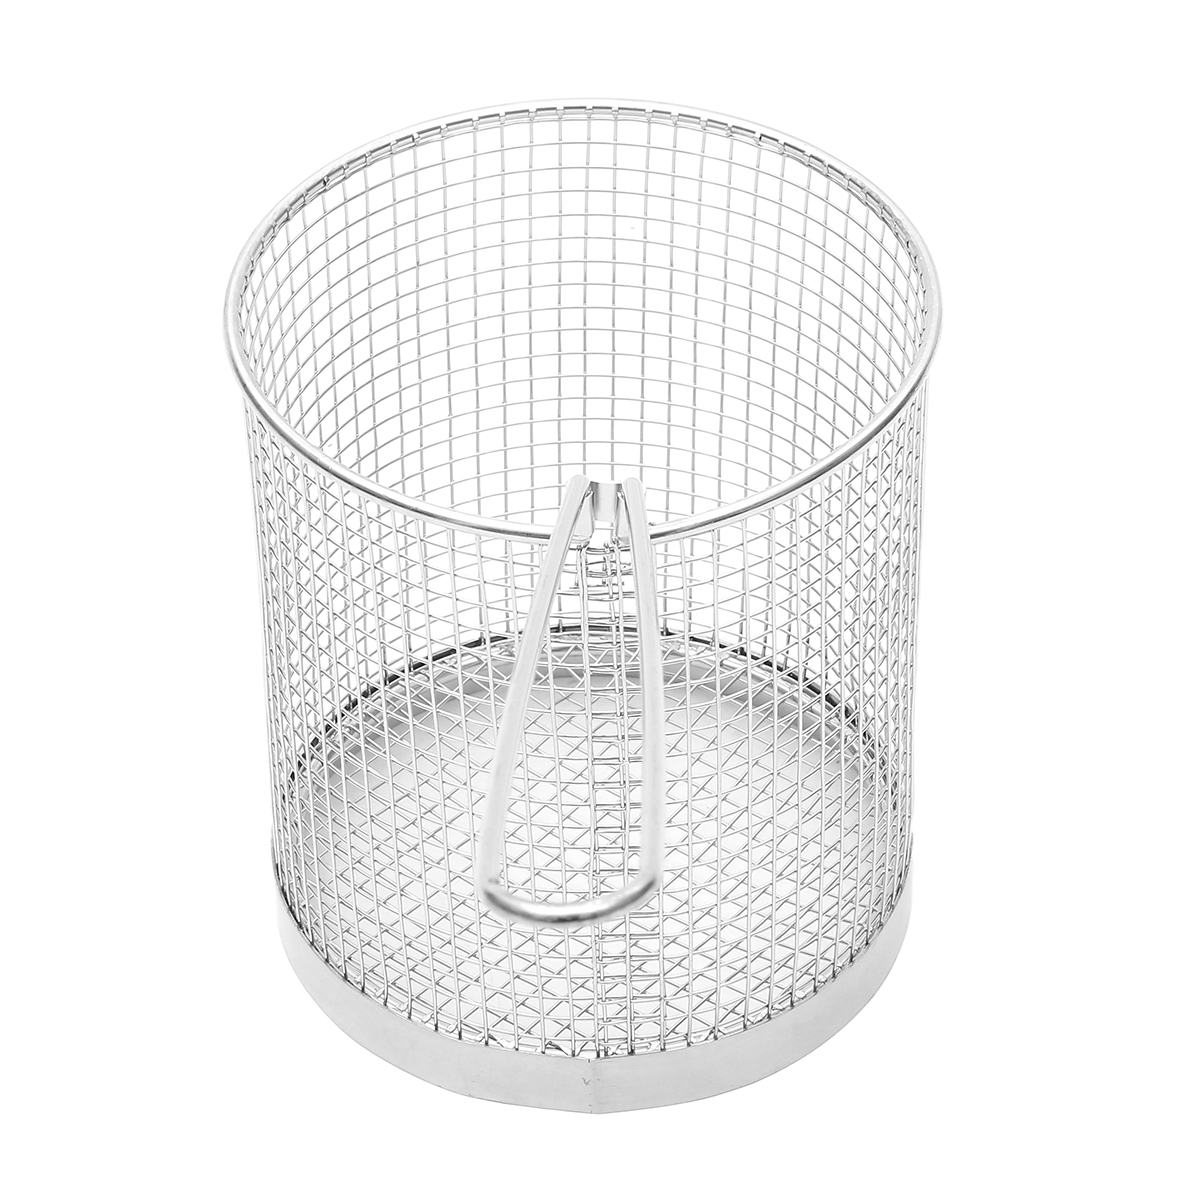 Stainless Steel Round Fry Basket Long Handle Fried Scampi Chips Chicken Fryer Strainer